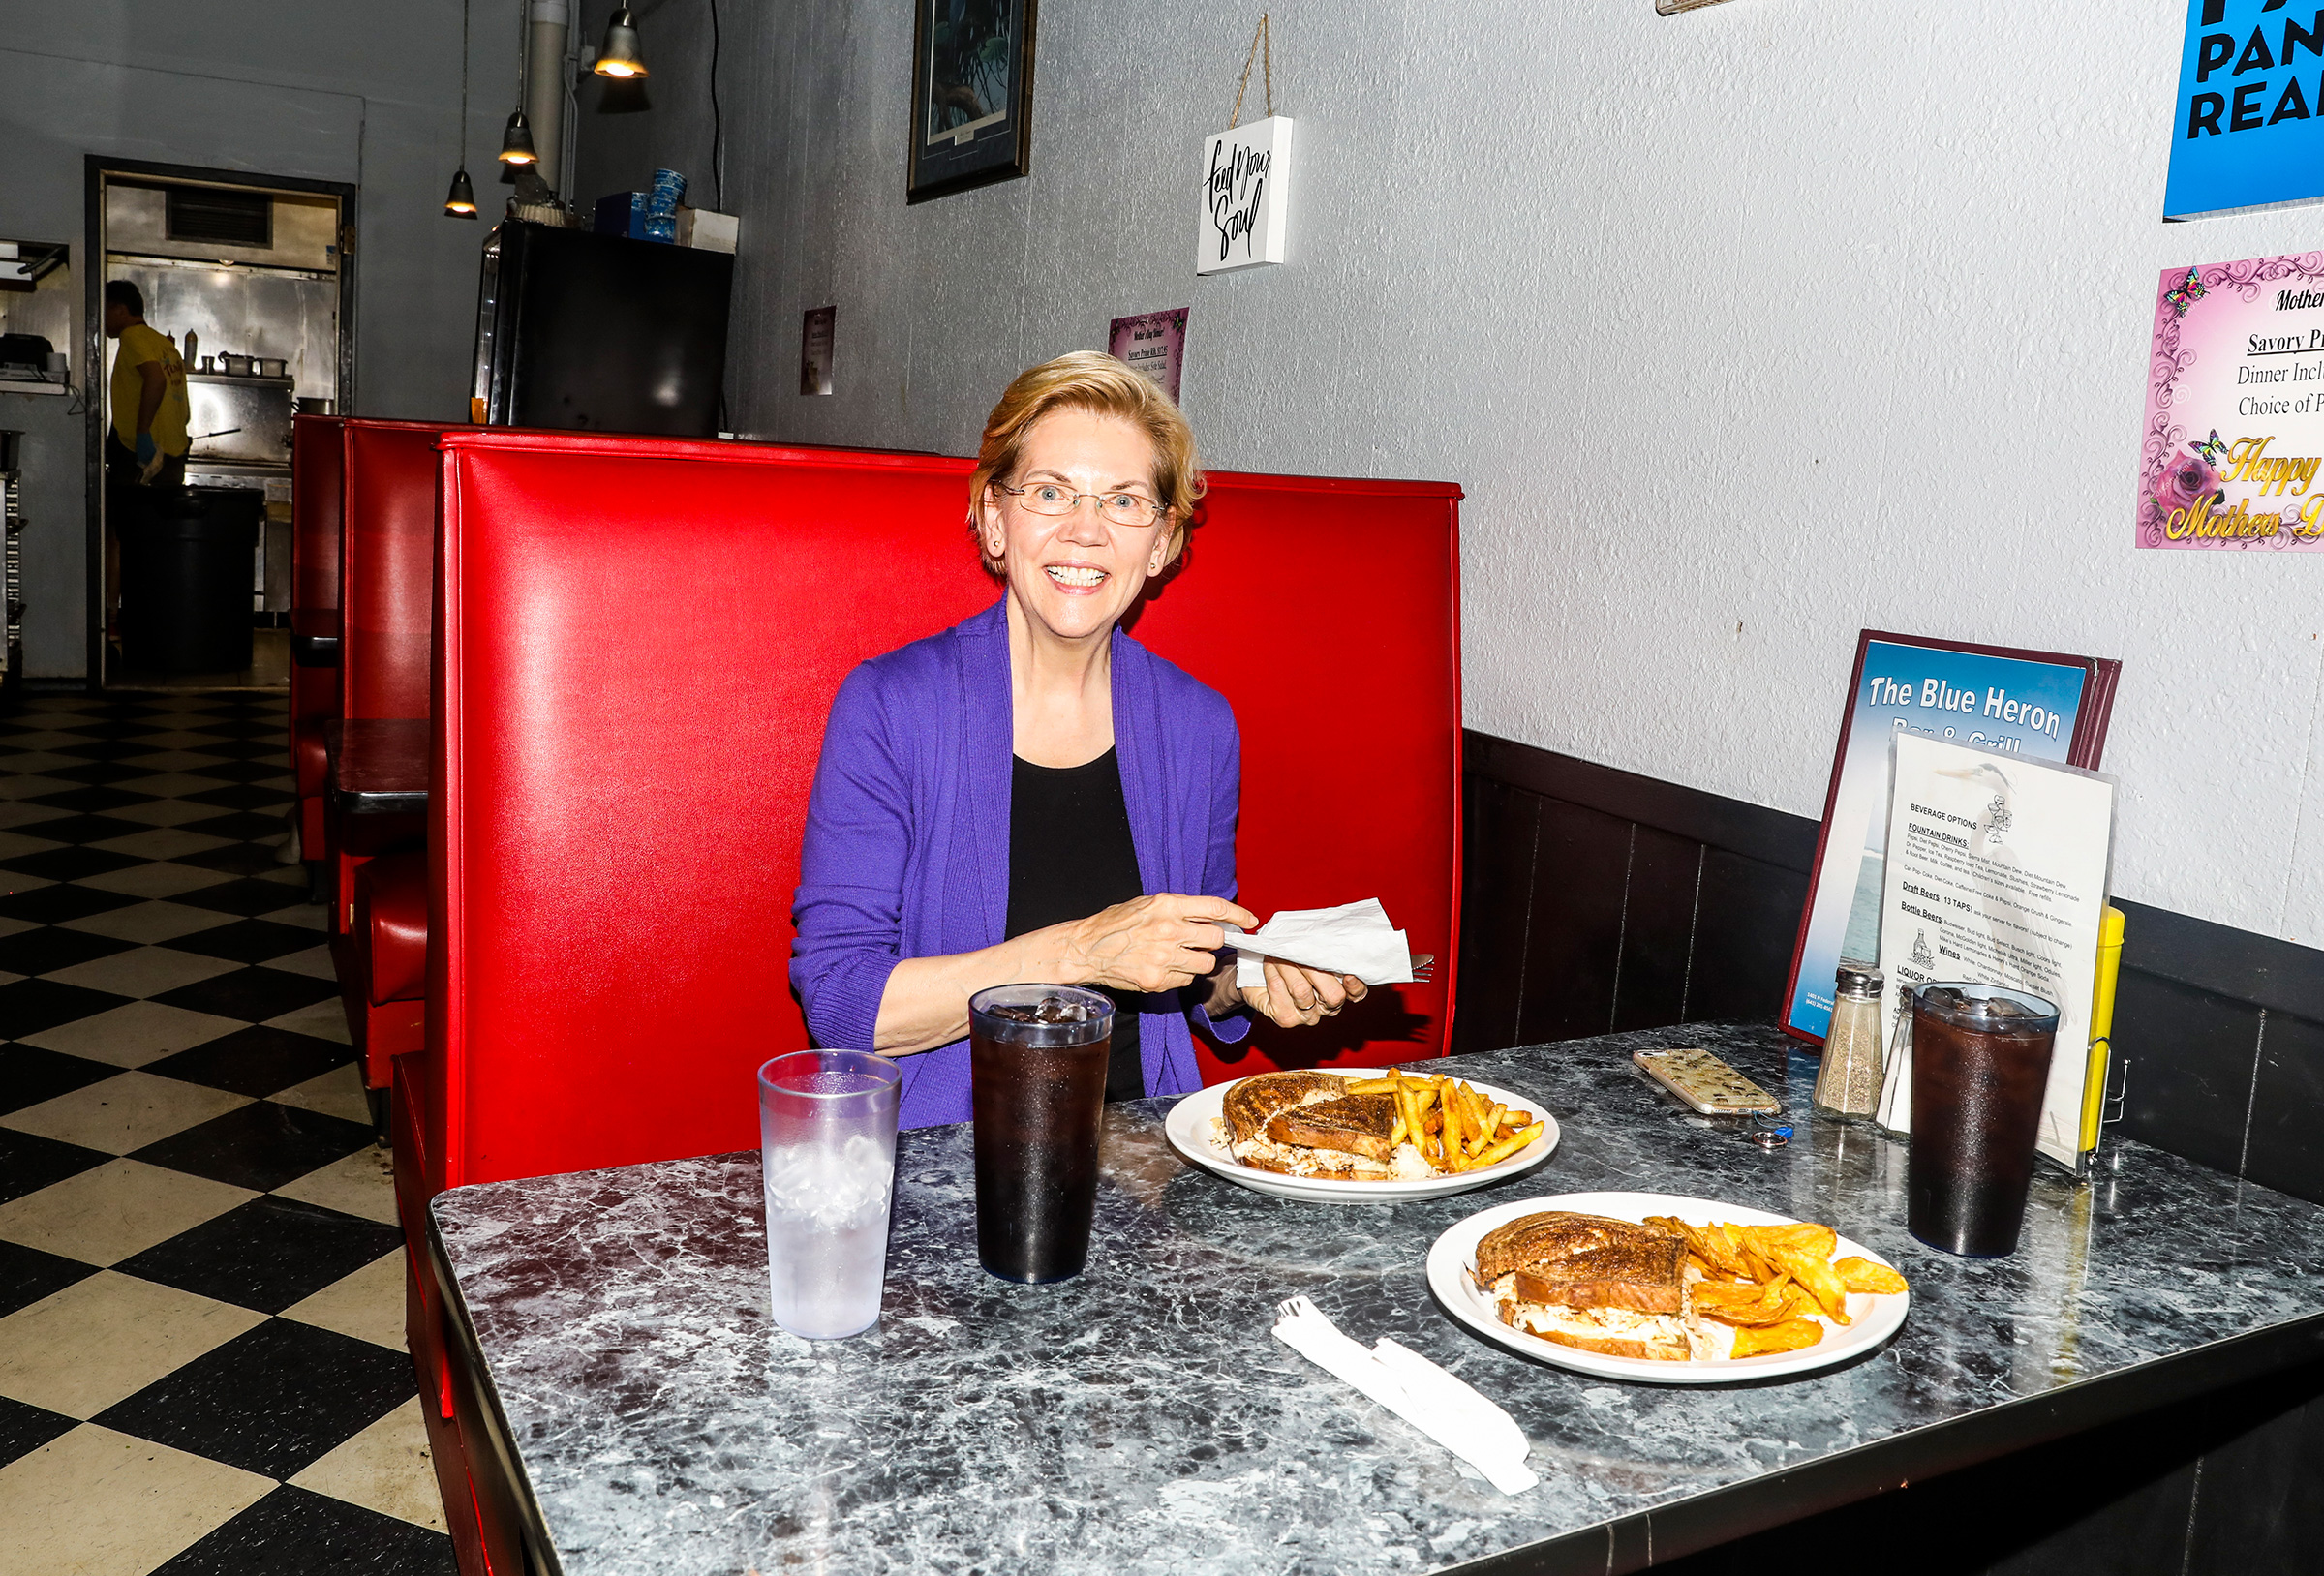 On May 4, Democratic presidential candidate Sen. Elizabeth Warren stops for lunch at The Blue Heron in Mason City, Iowa. May 20 issue.